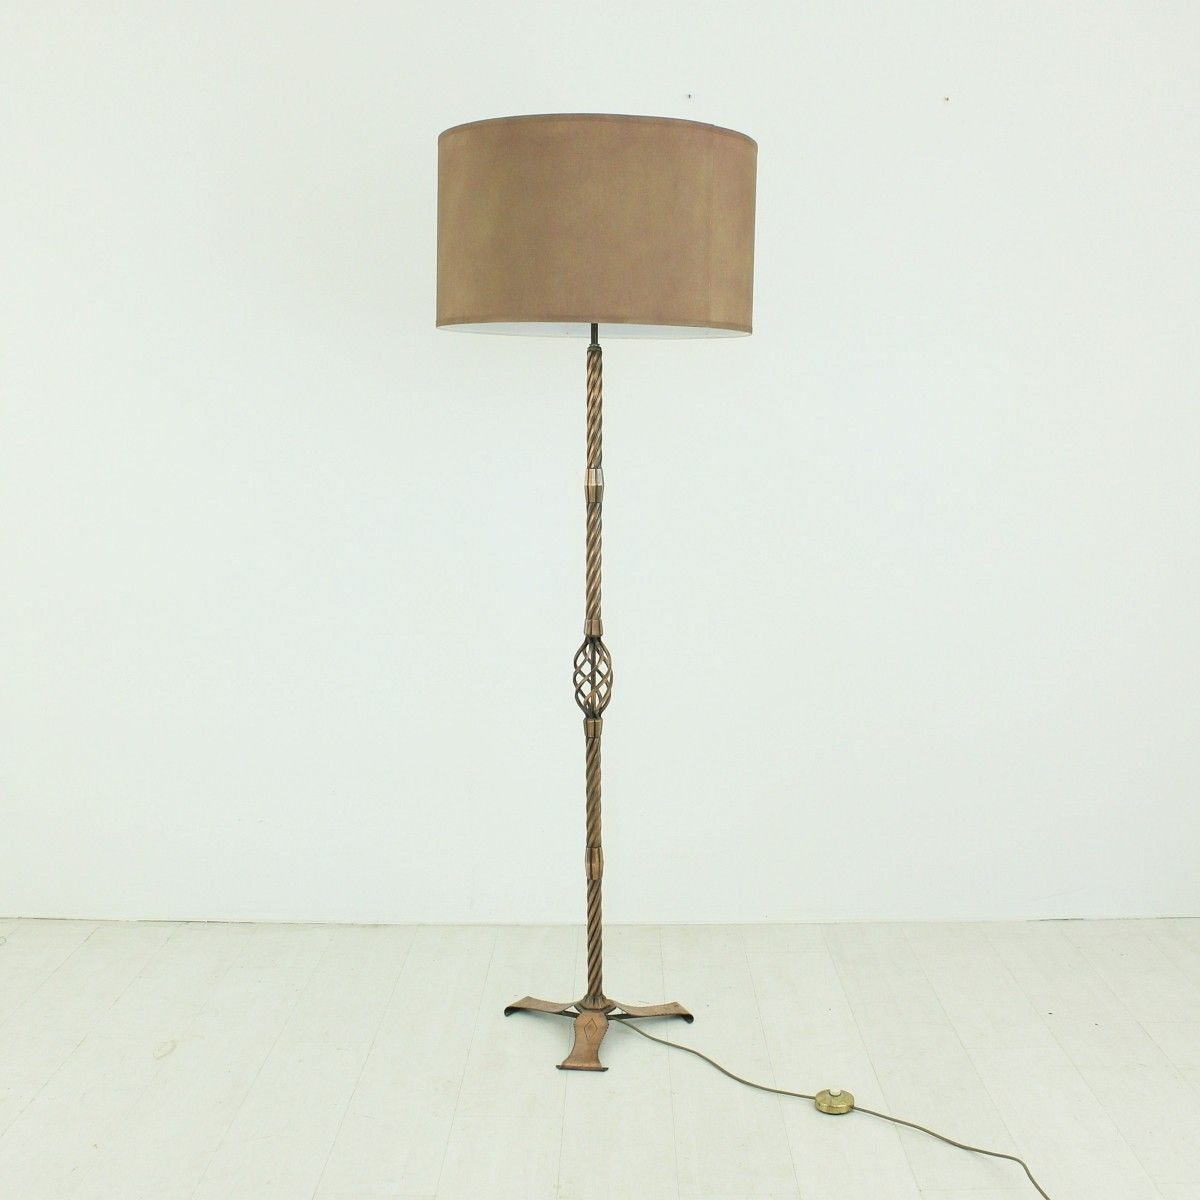 Copper floor lamp 1930s for sale at pamono for 1930s floor lamp